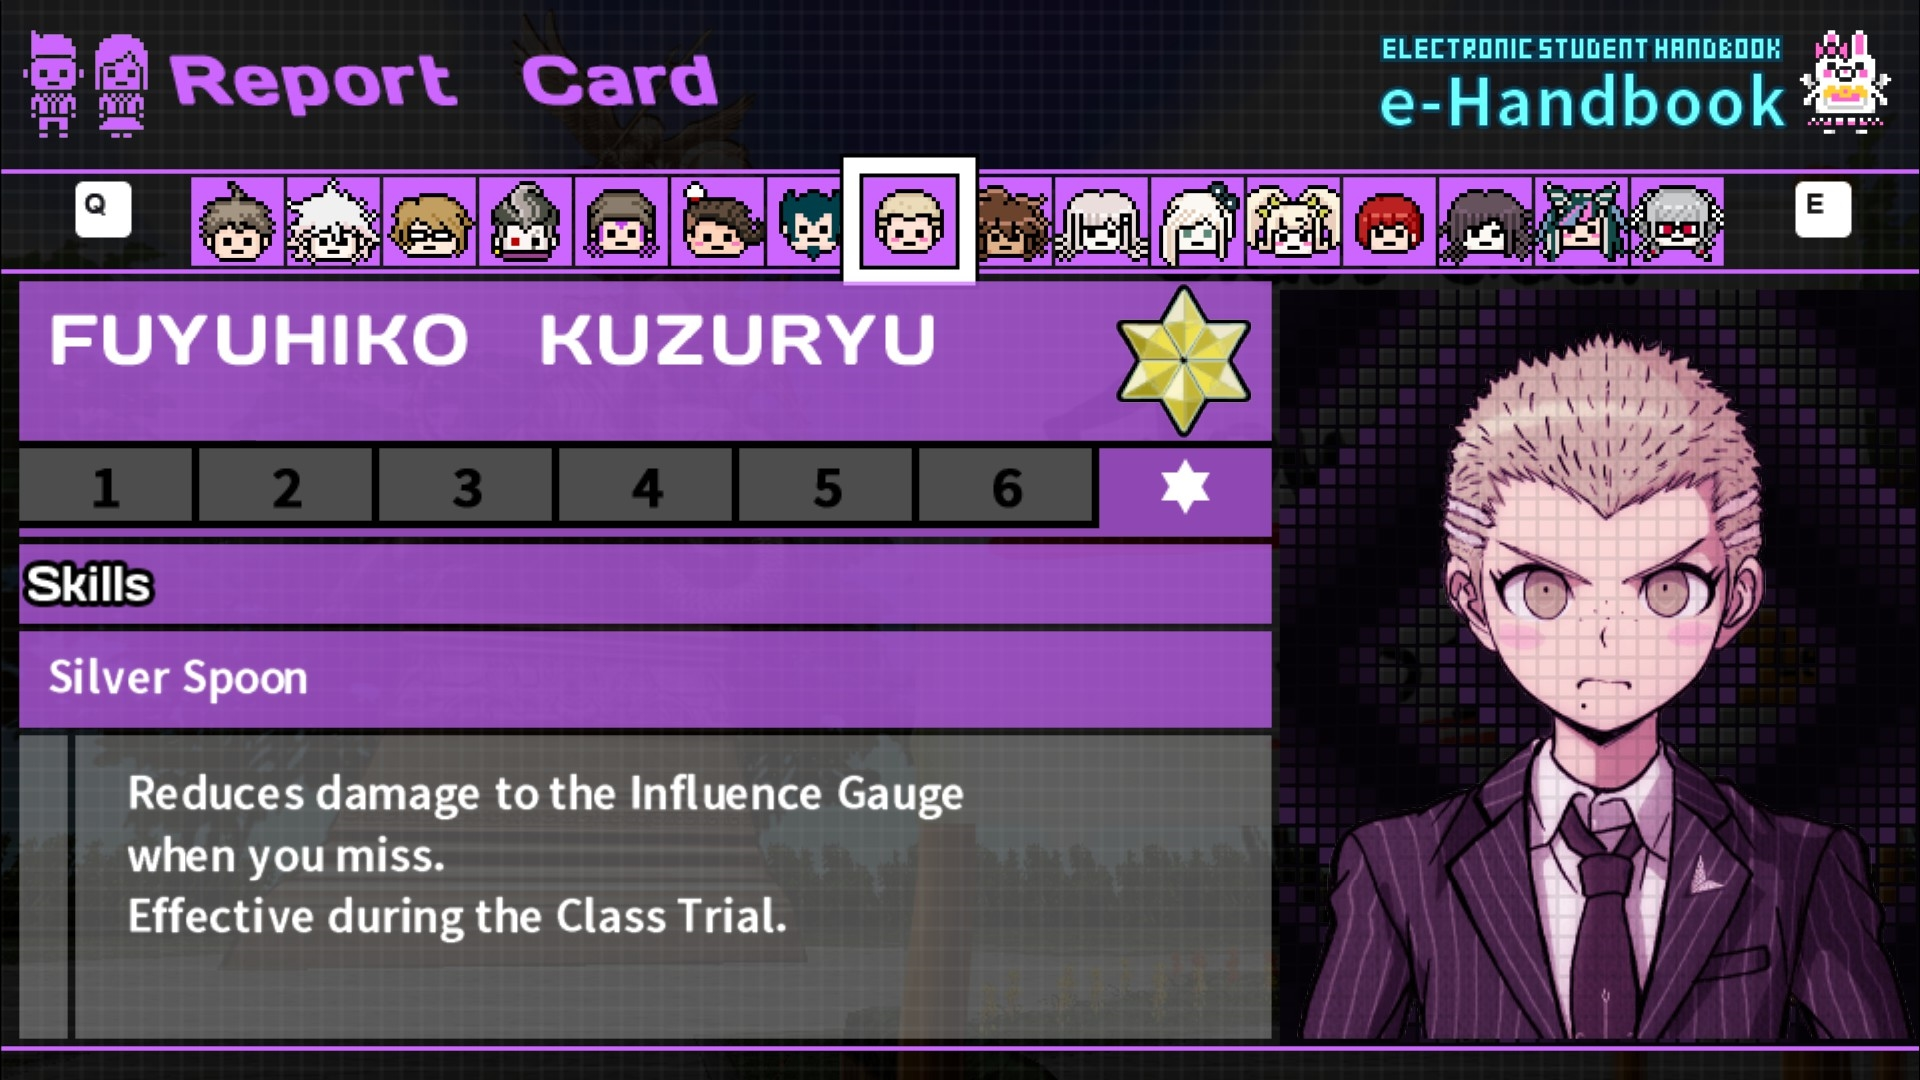 danganronpa 2 report cards  Free Time Events/Fuyuhiko Kuzuryu | Danganronpa Wiki | Fandom